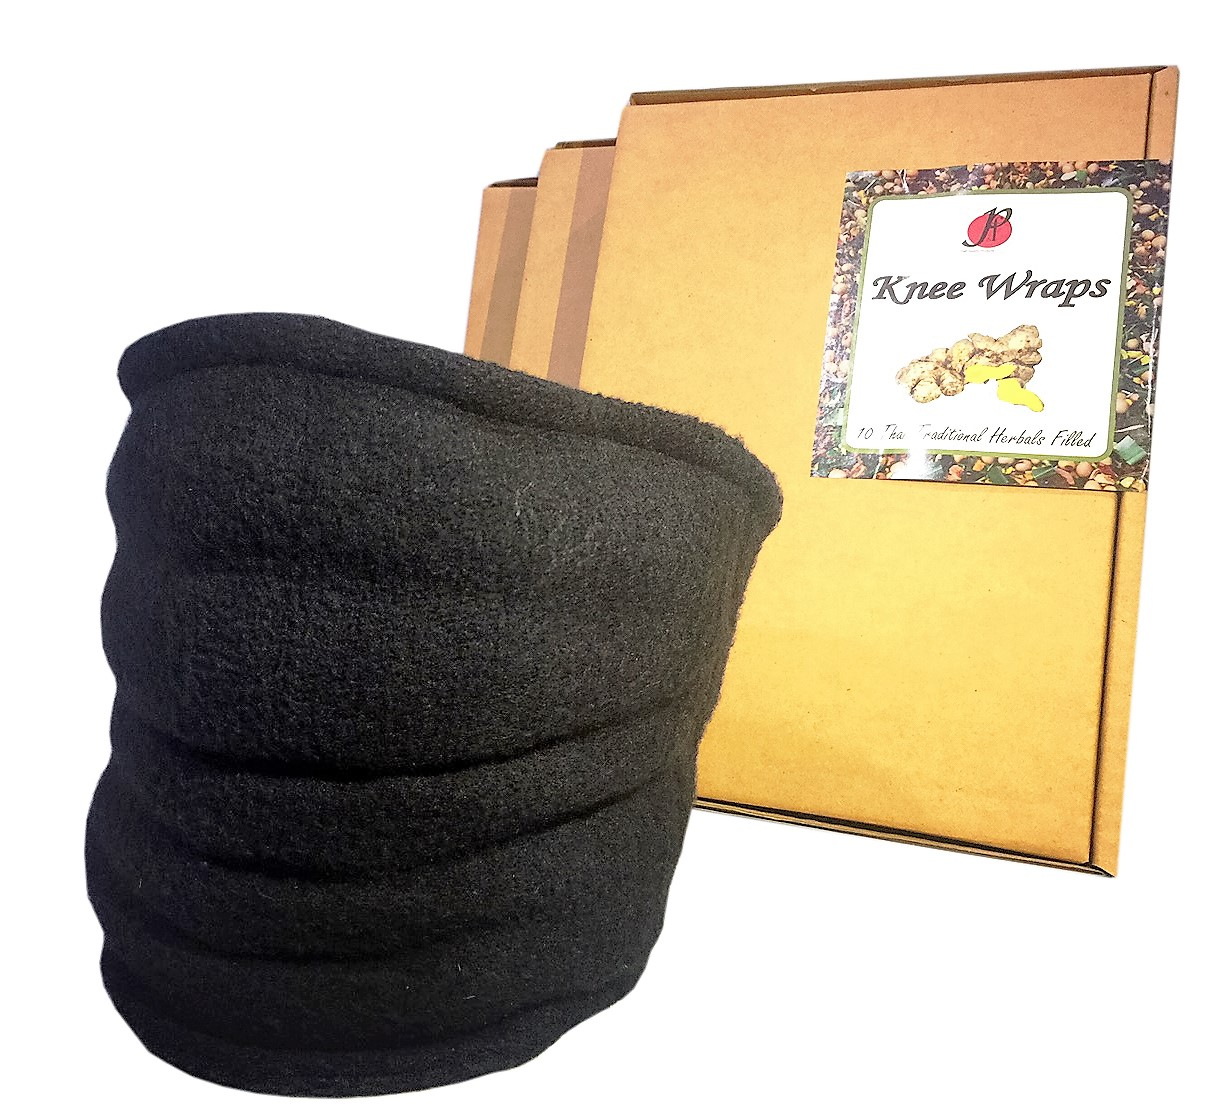 Knee Wraps for Pain Relief by P&F- Hot, Warm, or Cold Compresses with 10 Thai Traditional Herbals Filled